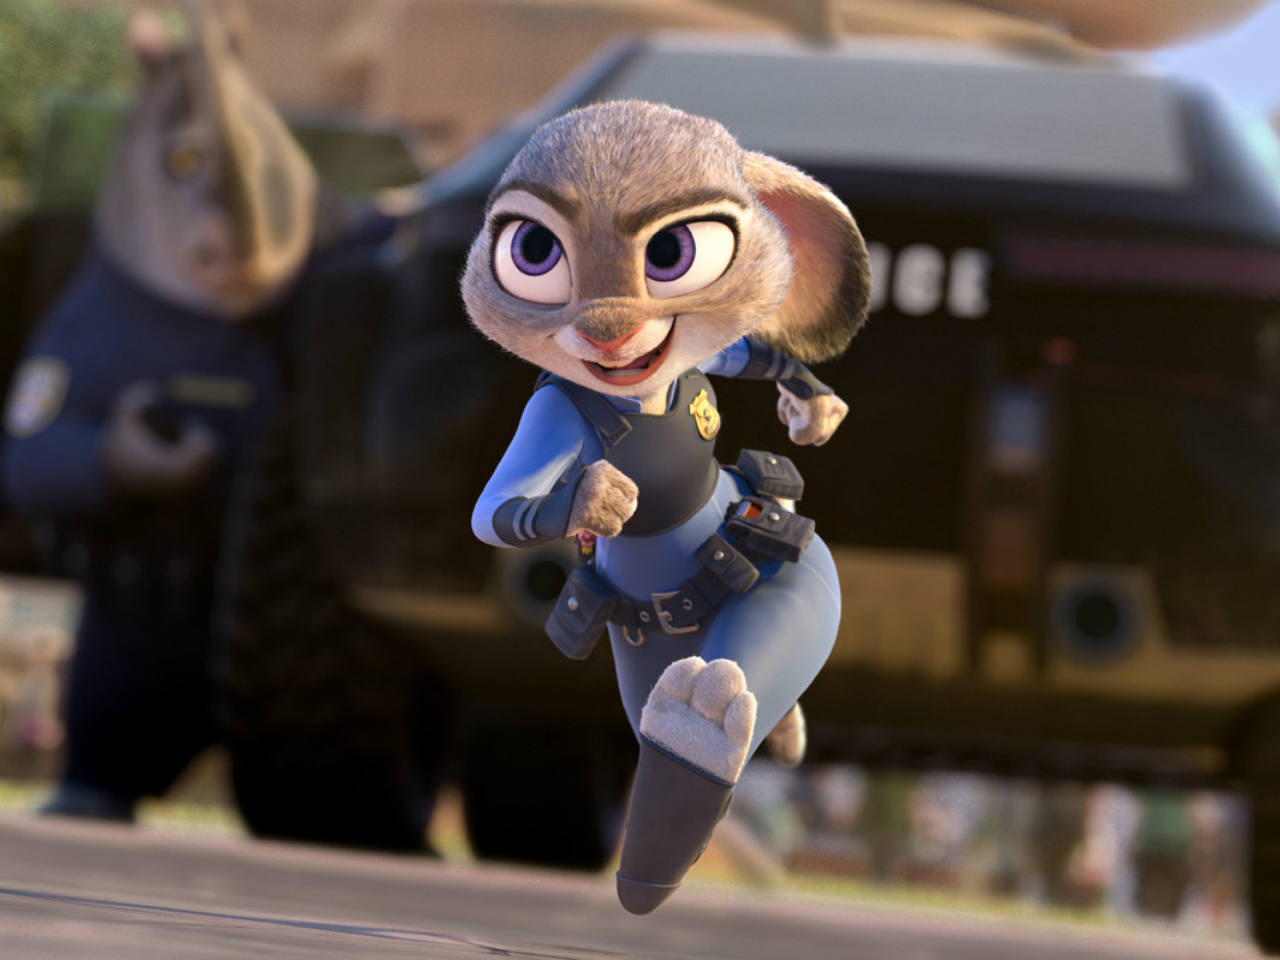 A still from the animated movie Zootopia